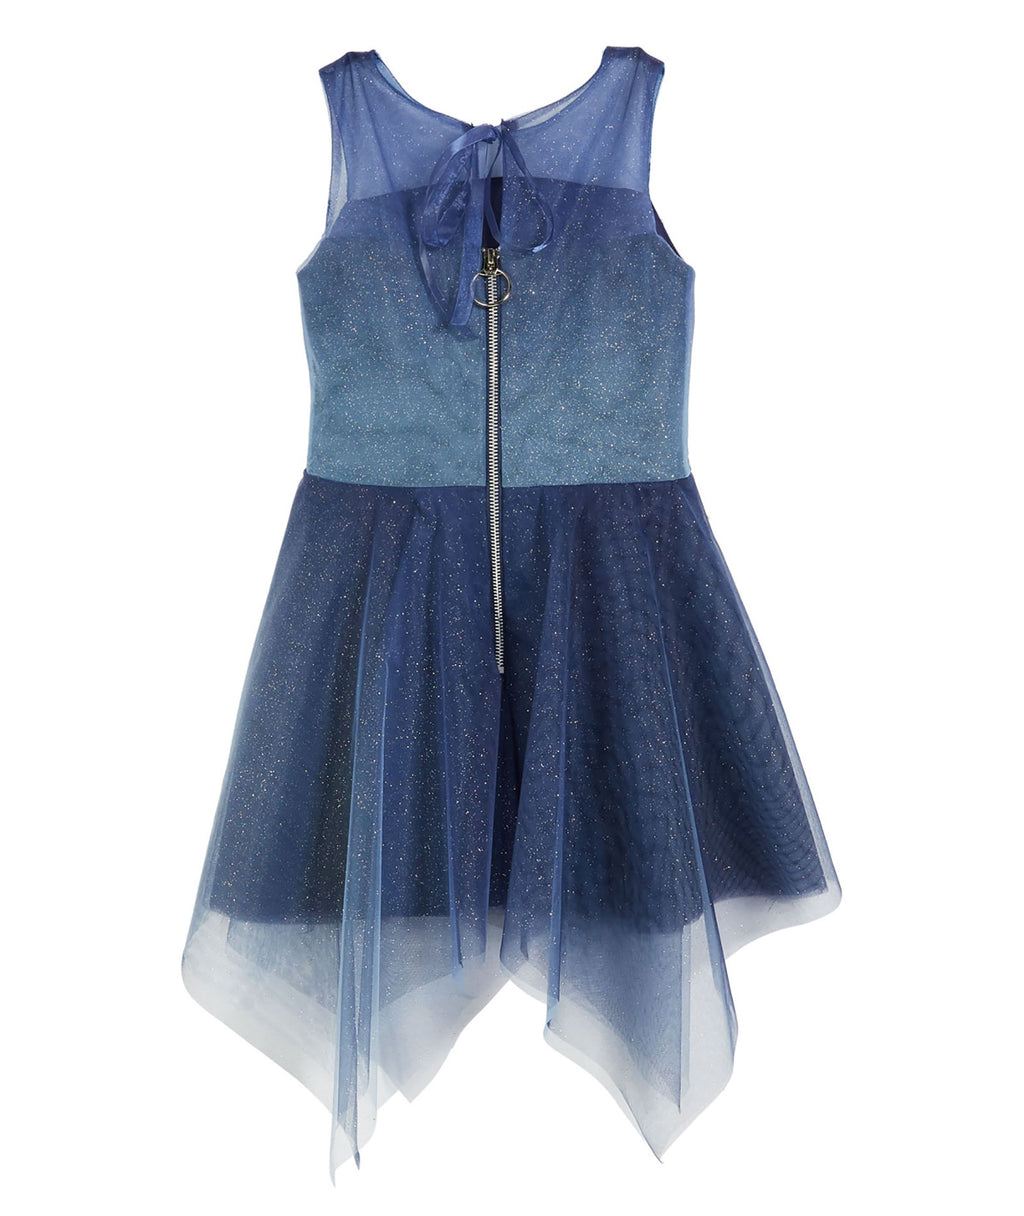 Zoe Ltd. Girls Suzy Dress